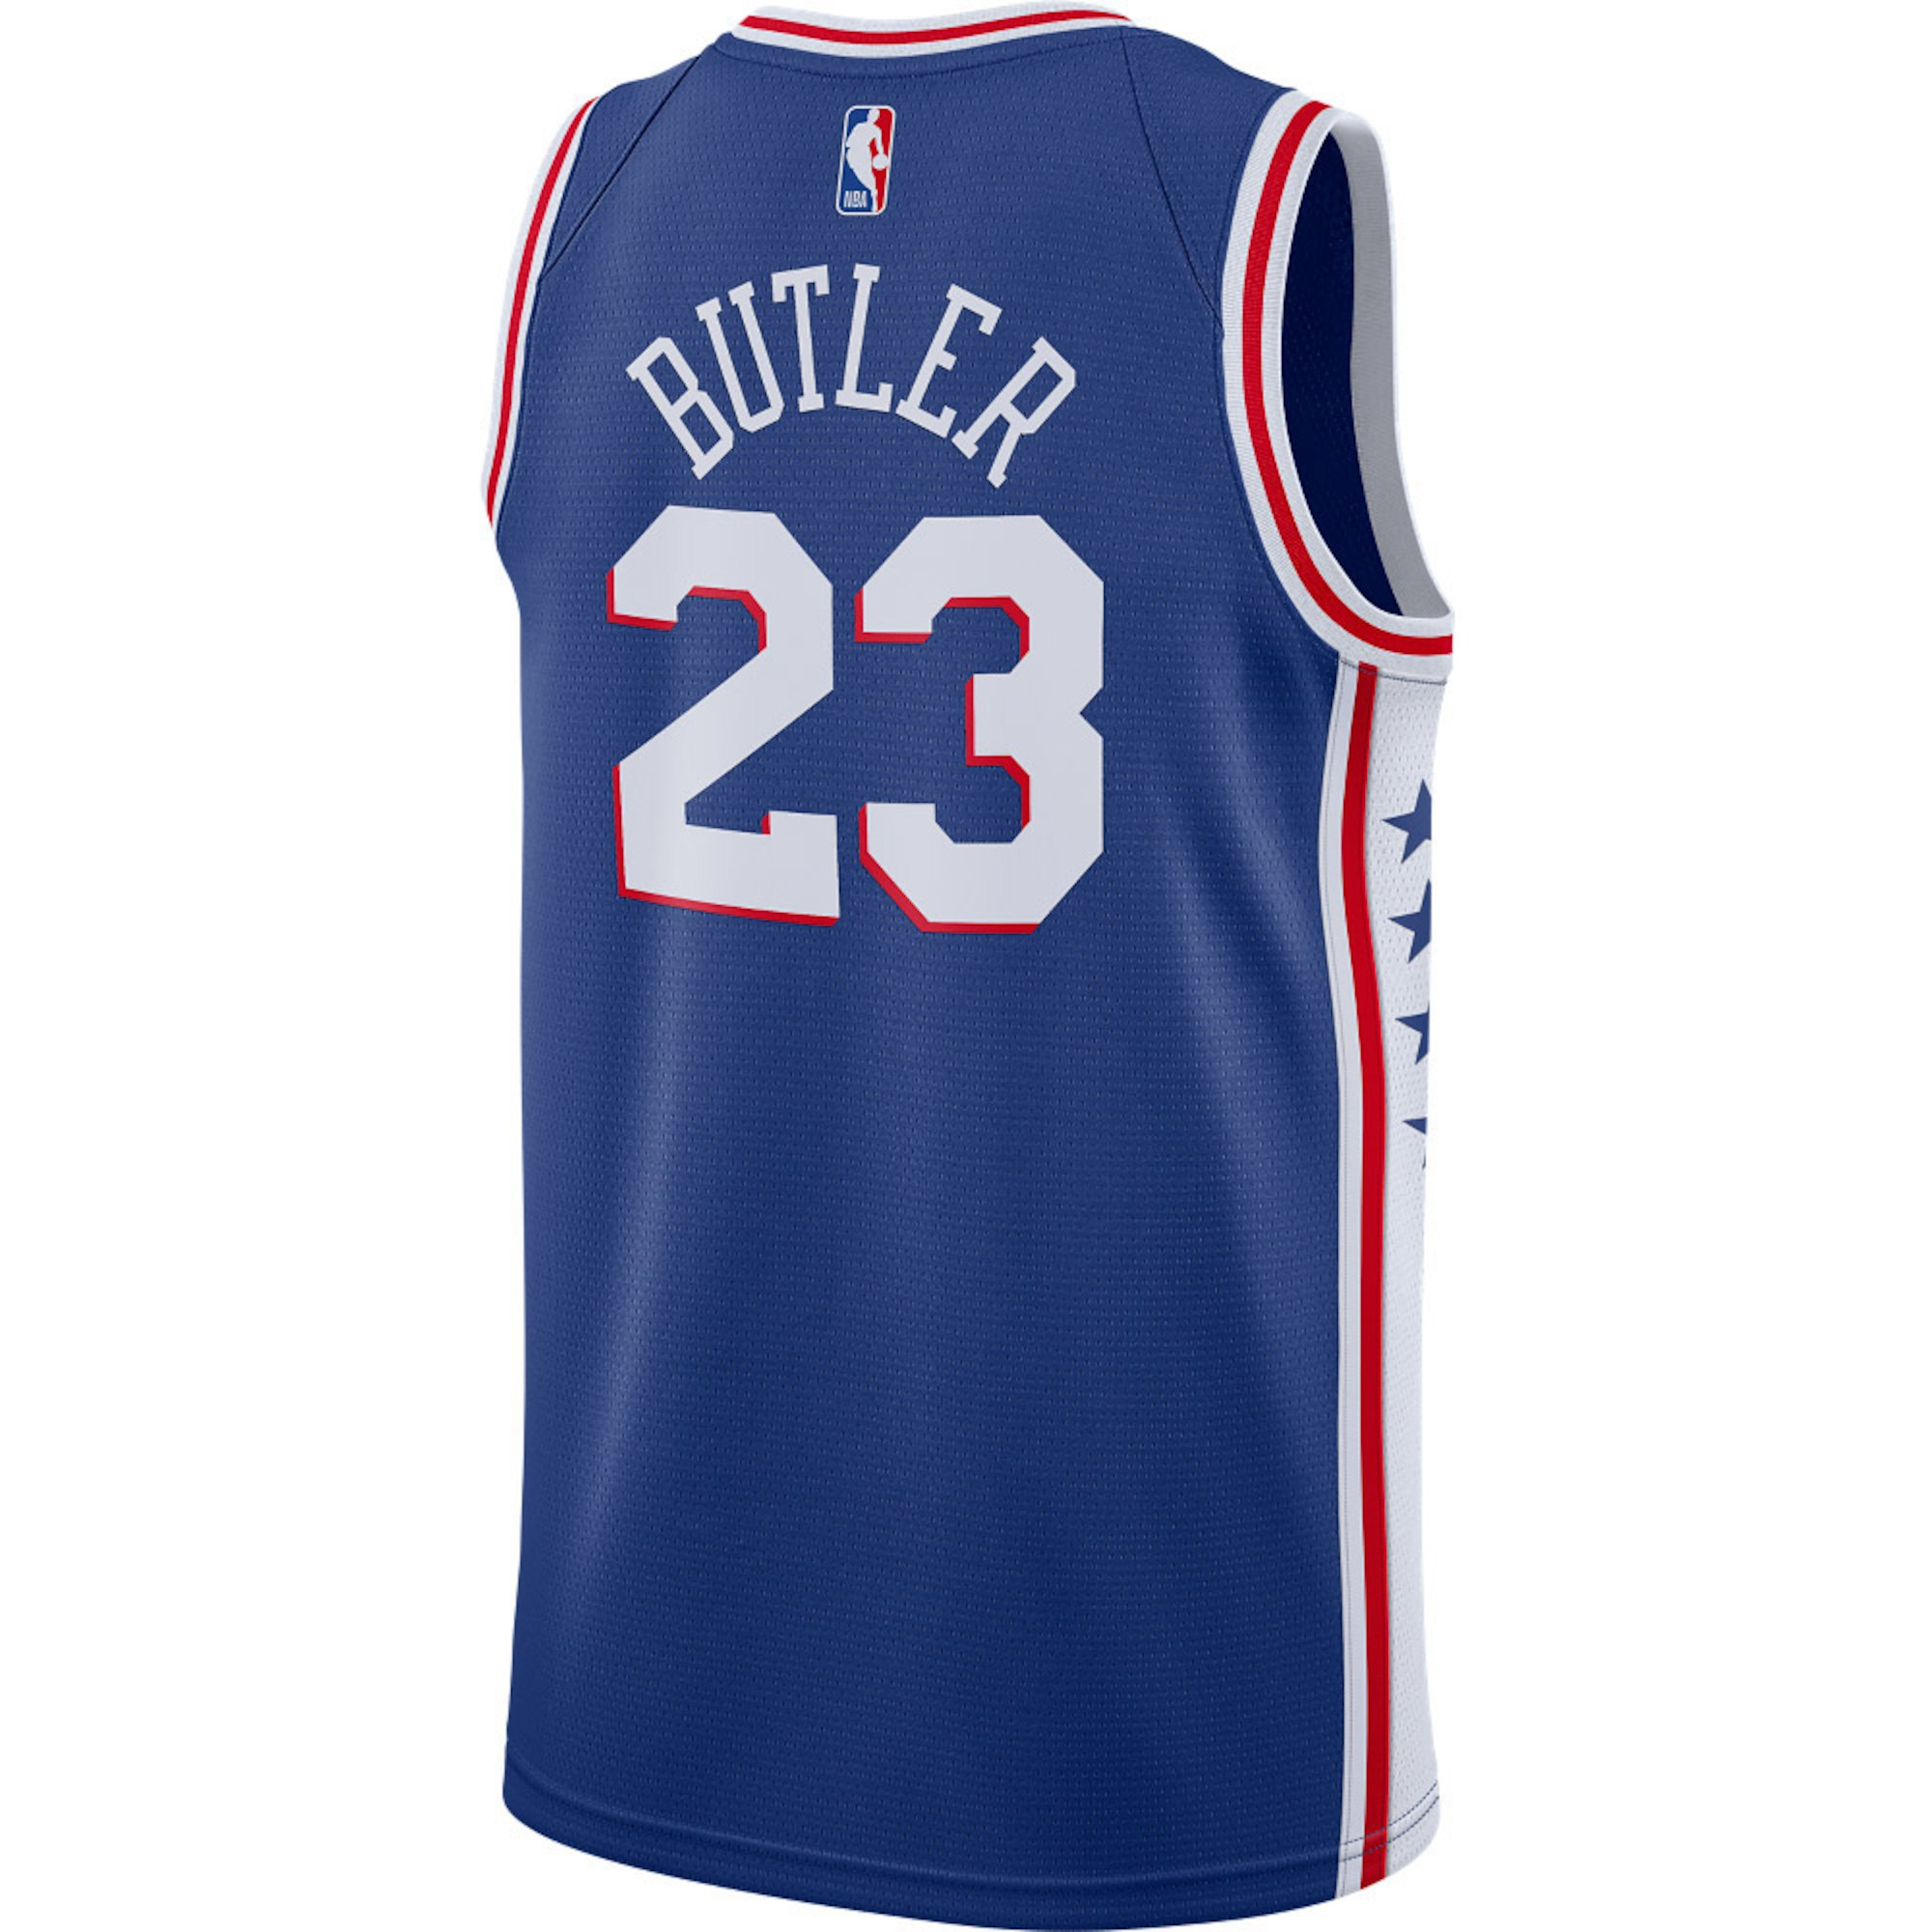 d9c111d4c73 Philadelphia 76ers Men s Blue Jimmy Butler Swingman Jersey by Nike ...